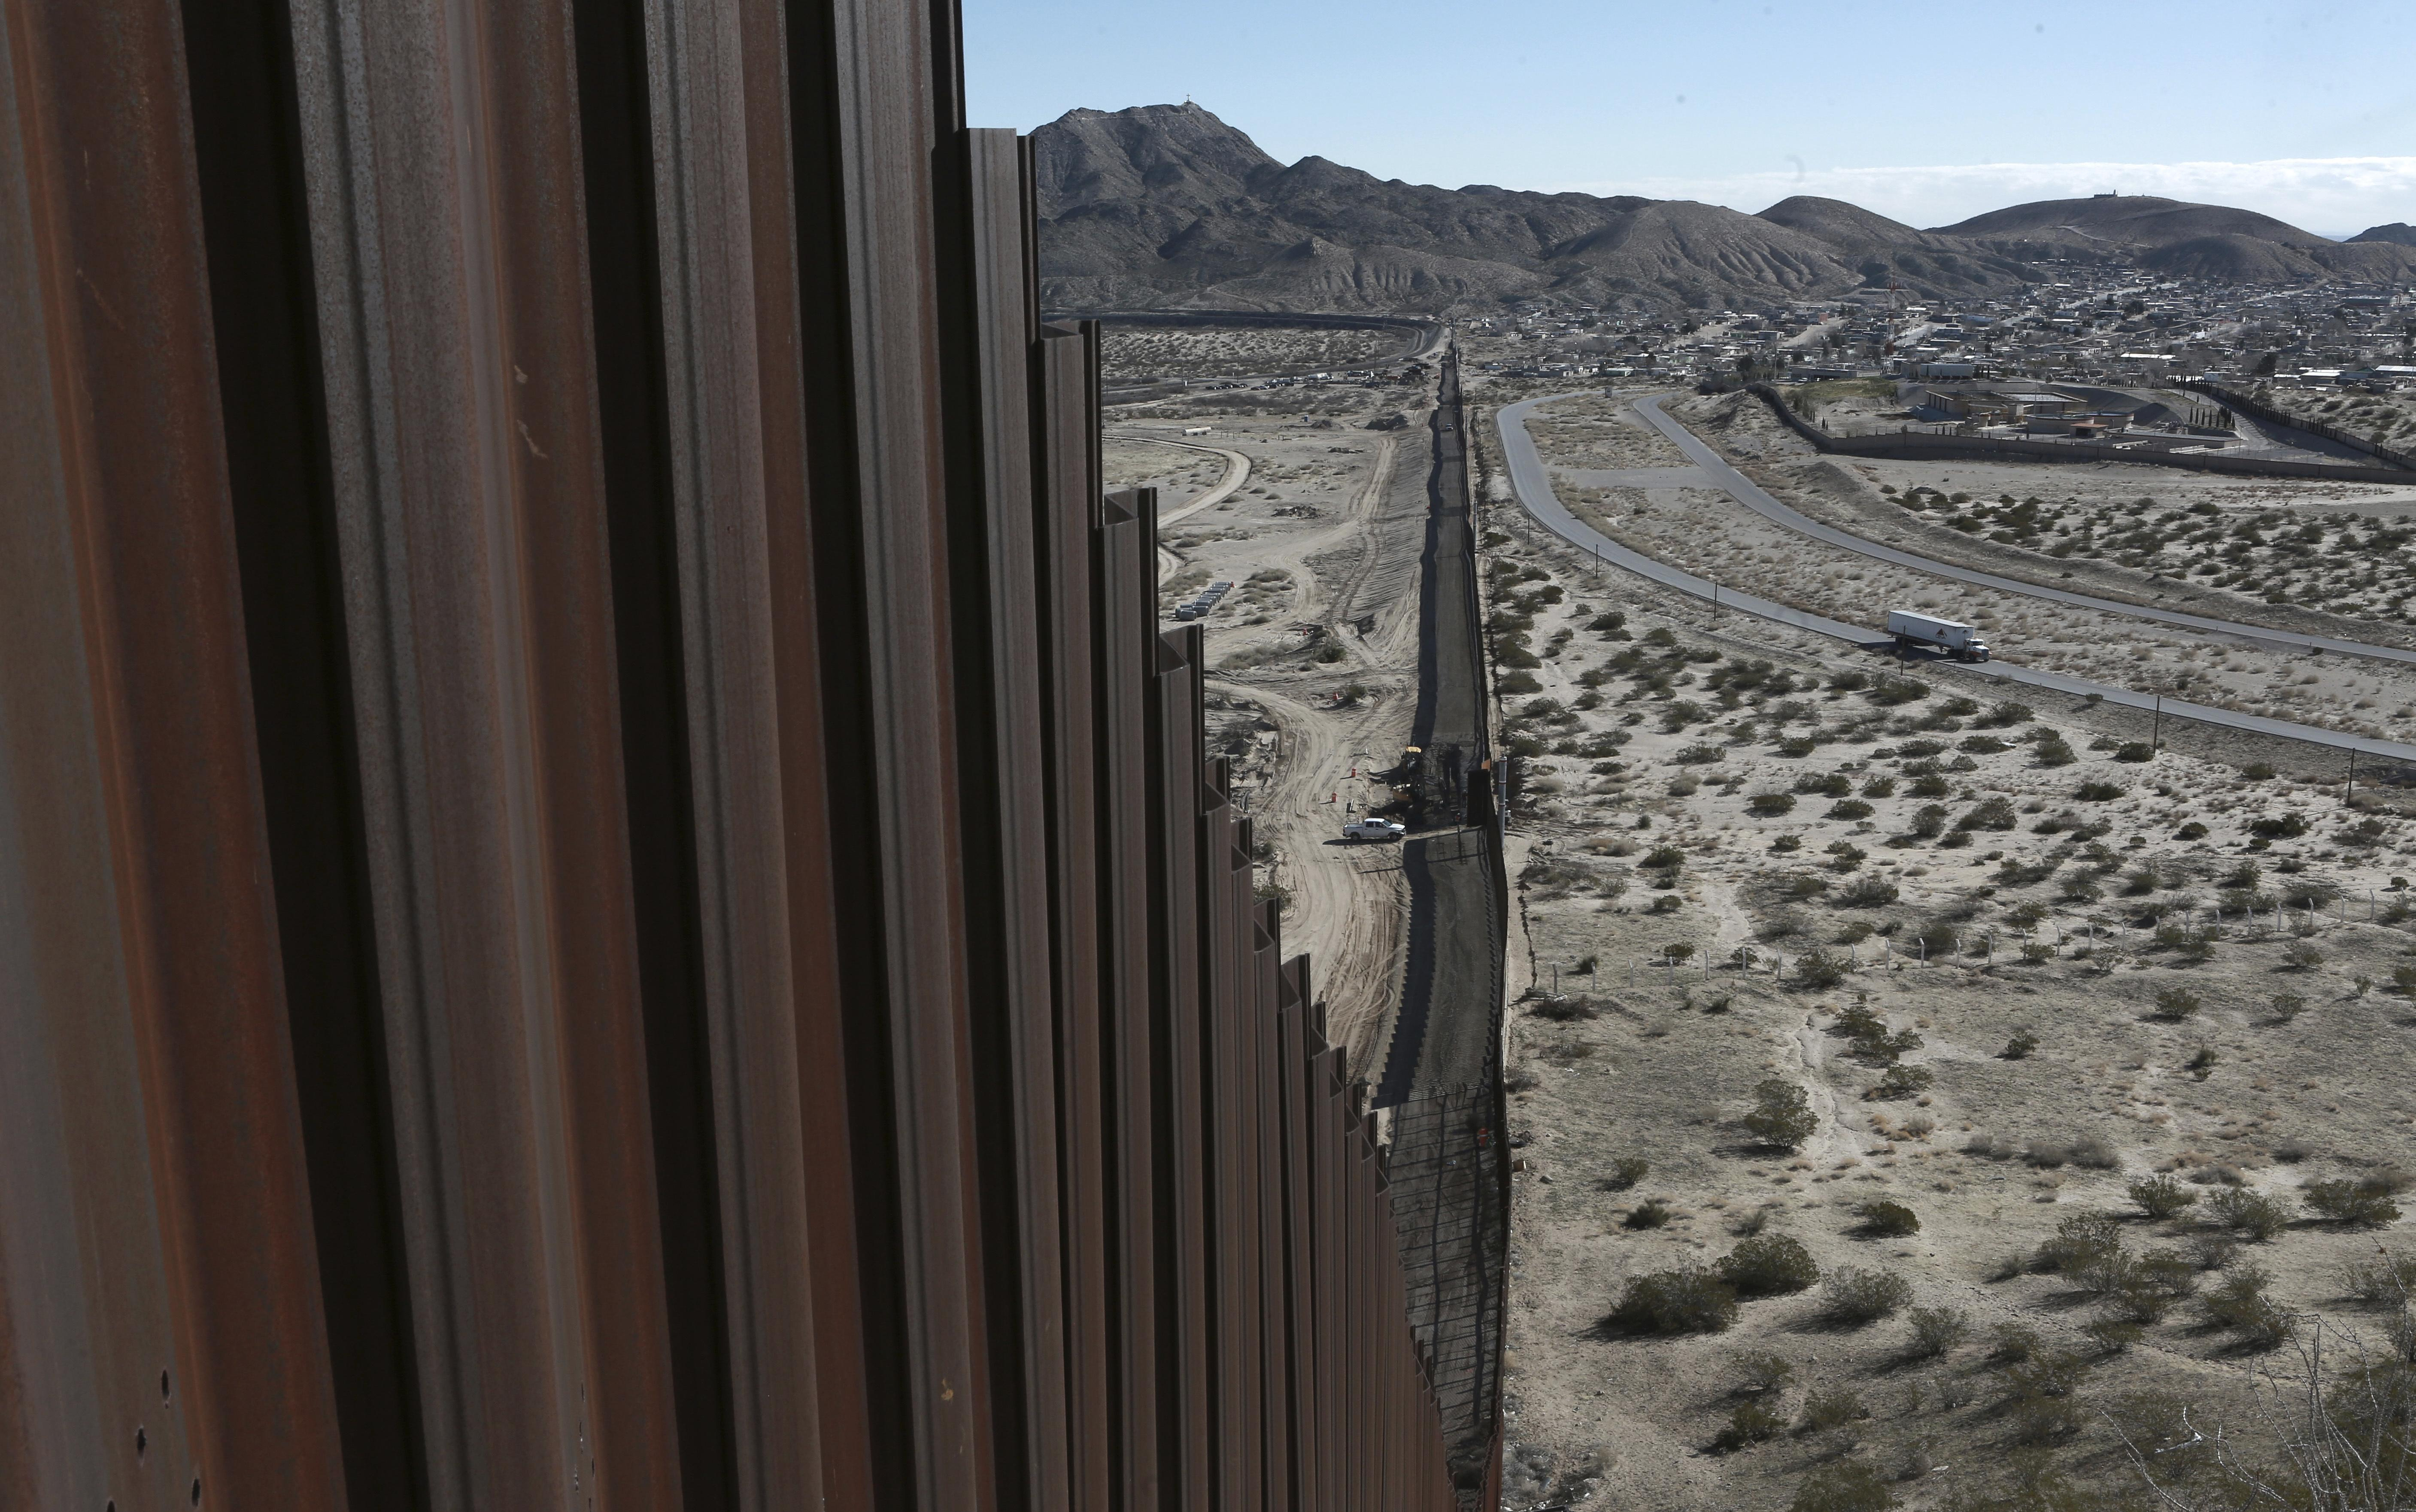 Mike Rogers pushes border wall bill, tax on remittances